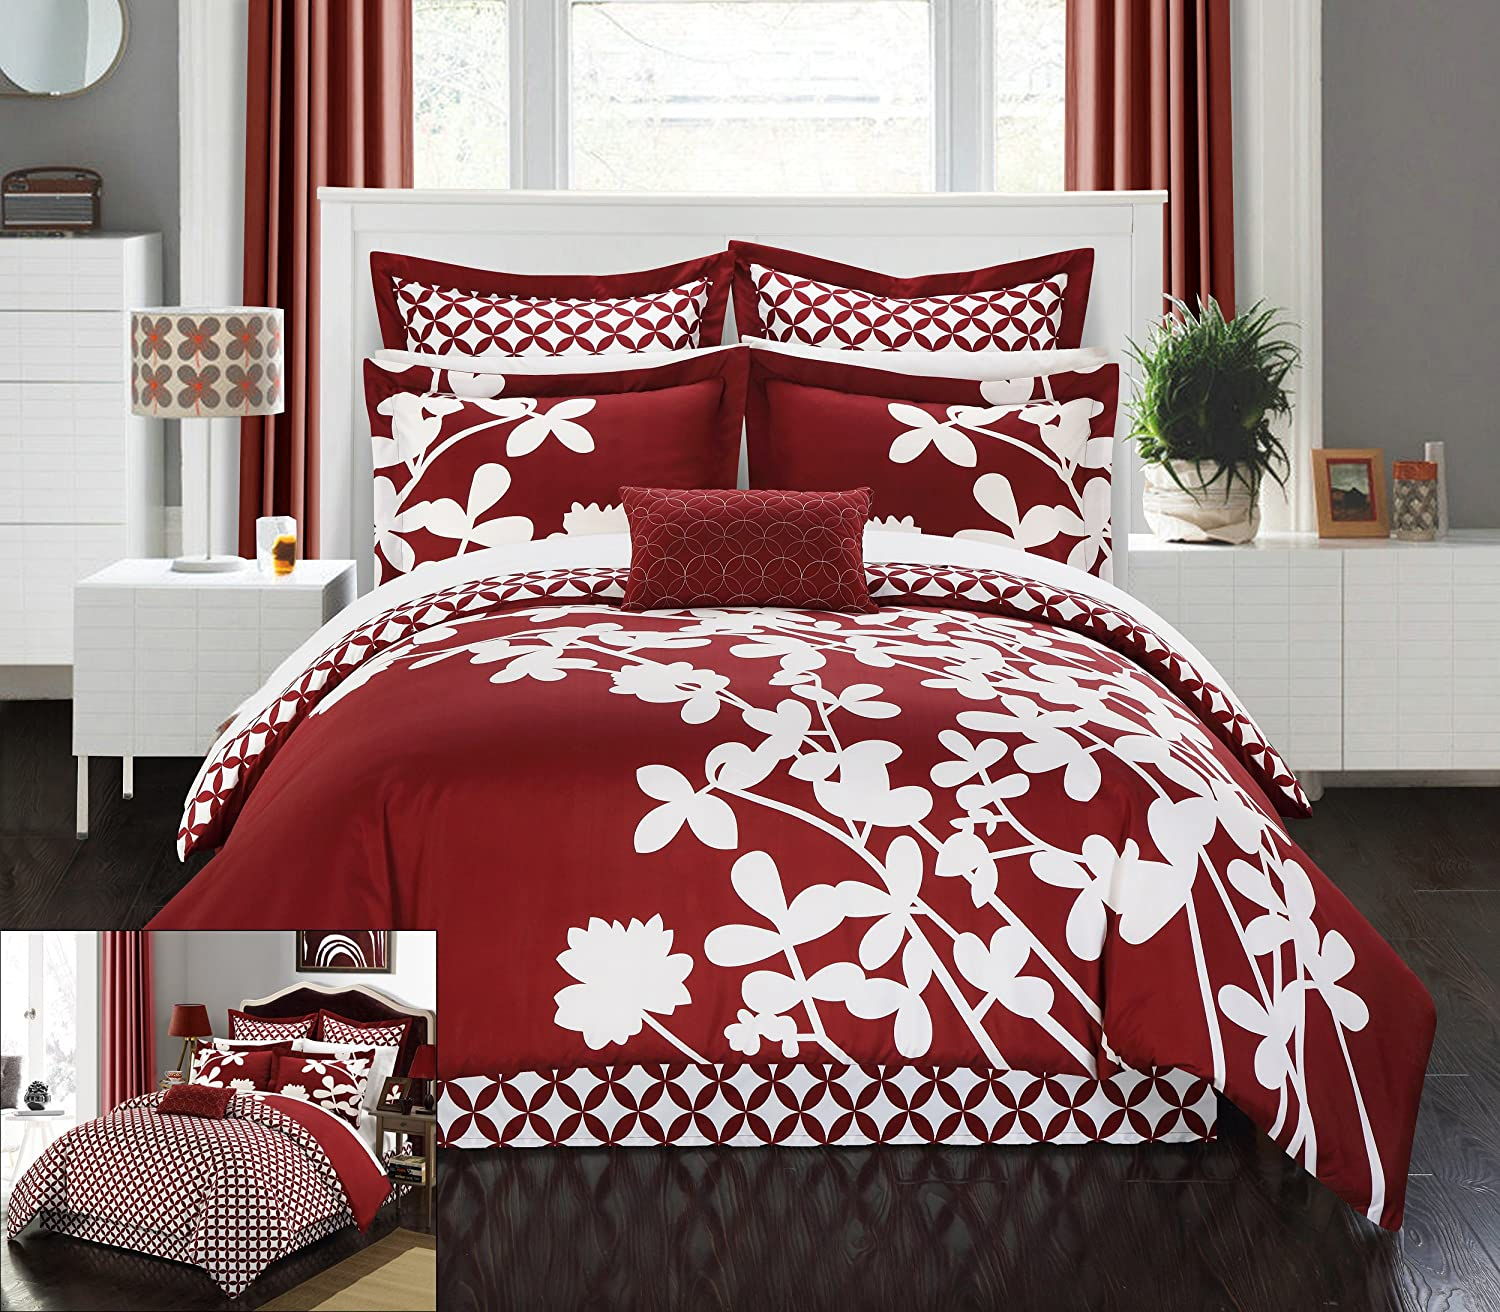 Floral Design Printed With Diamond Pattern Reverse Comforter Set, King, Red